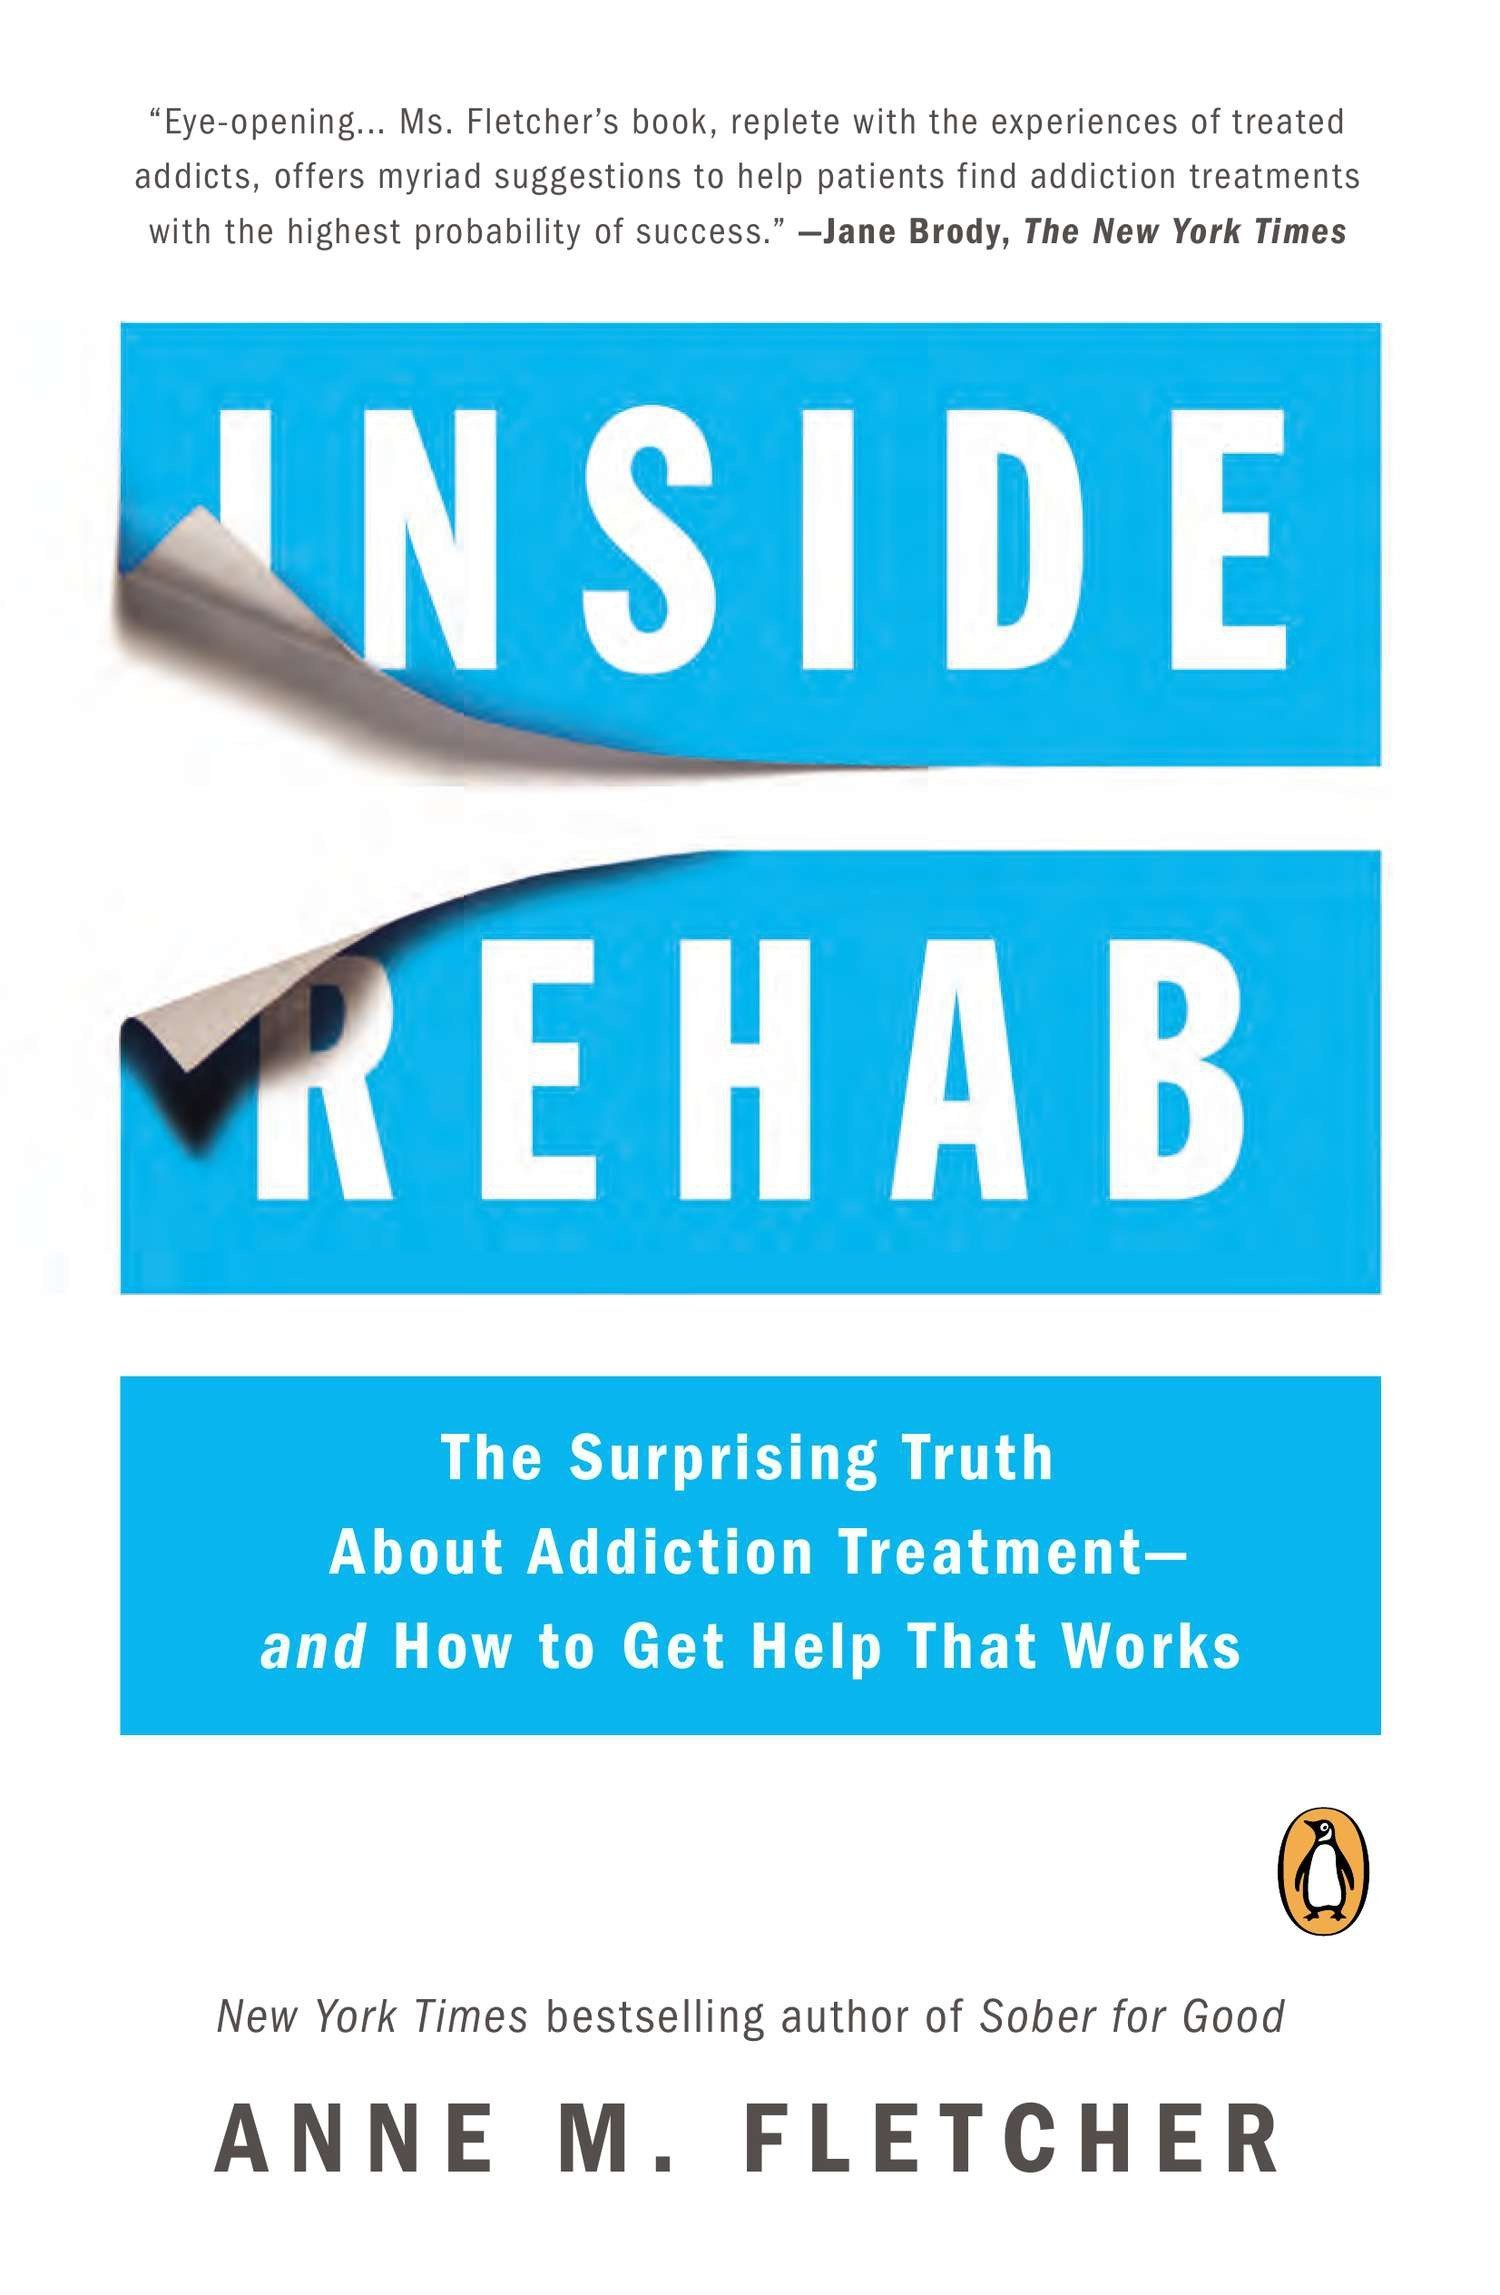 Addiction Clinic, The Following Big Point!